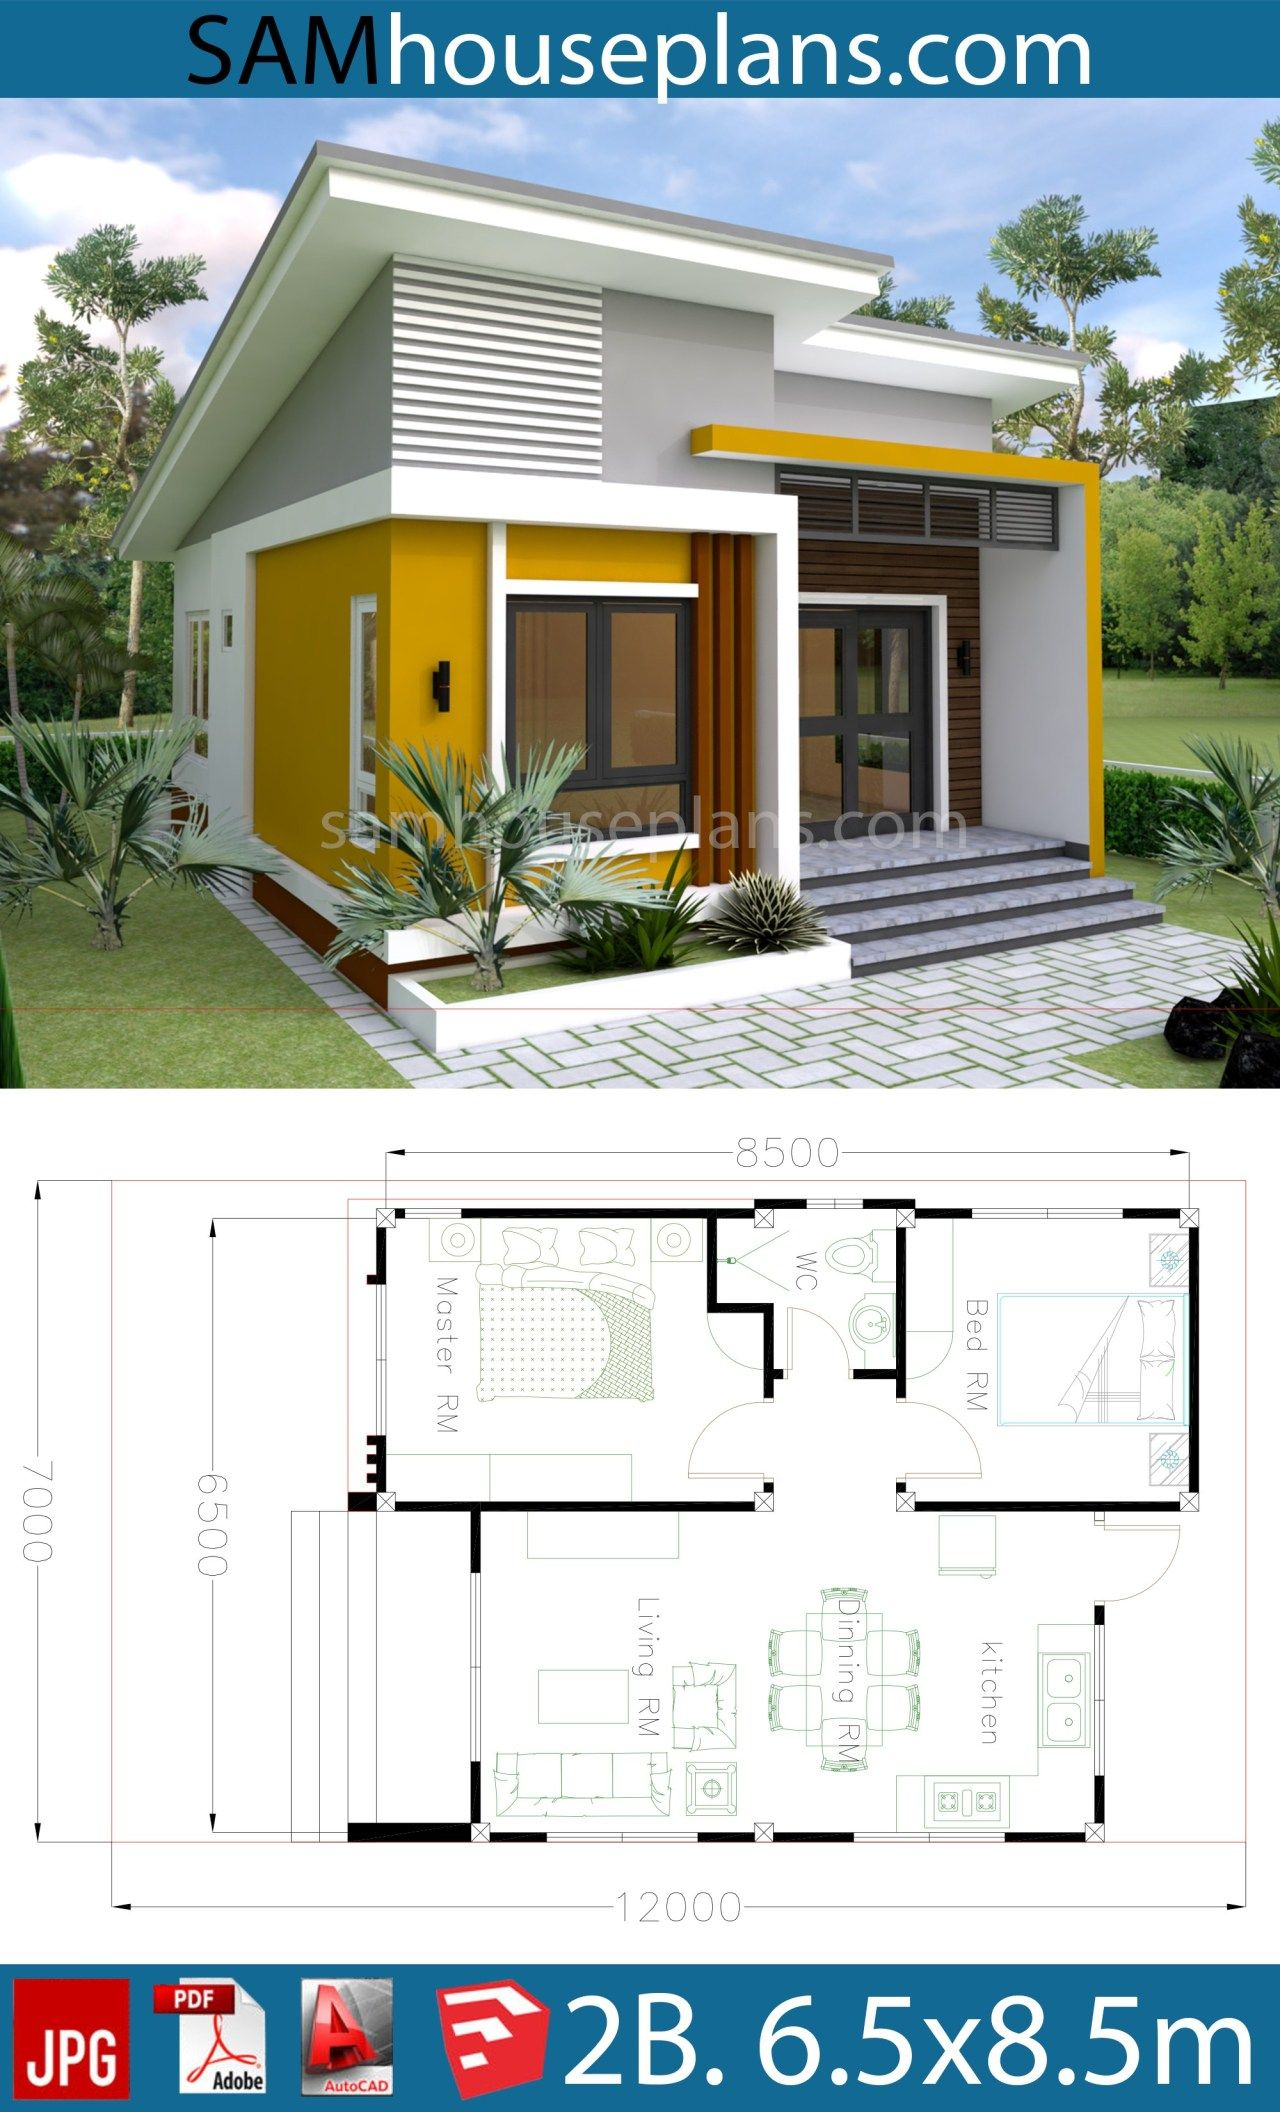 House Plans 6 5x8 5m With 2 Bedrooms Sam House Plans Simple House Design Small House Design Contemporary House Plans